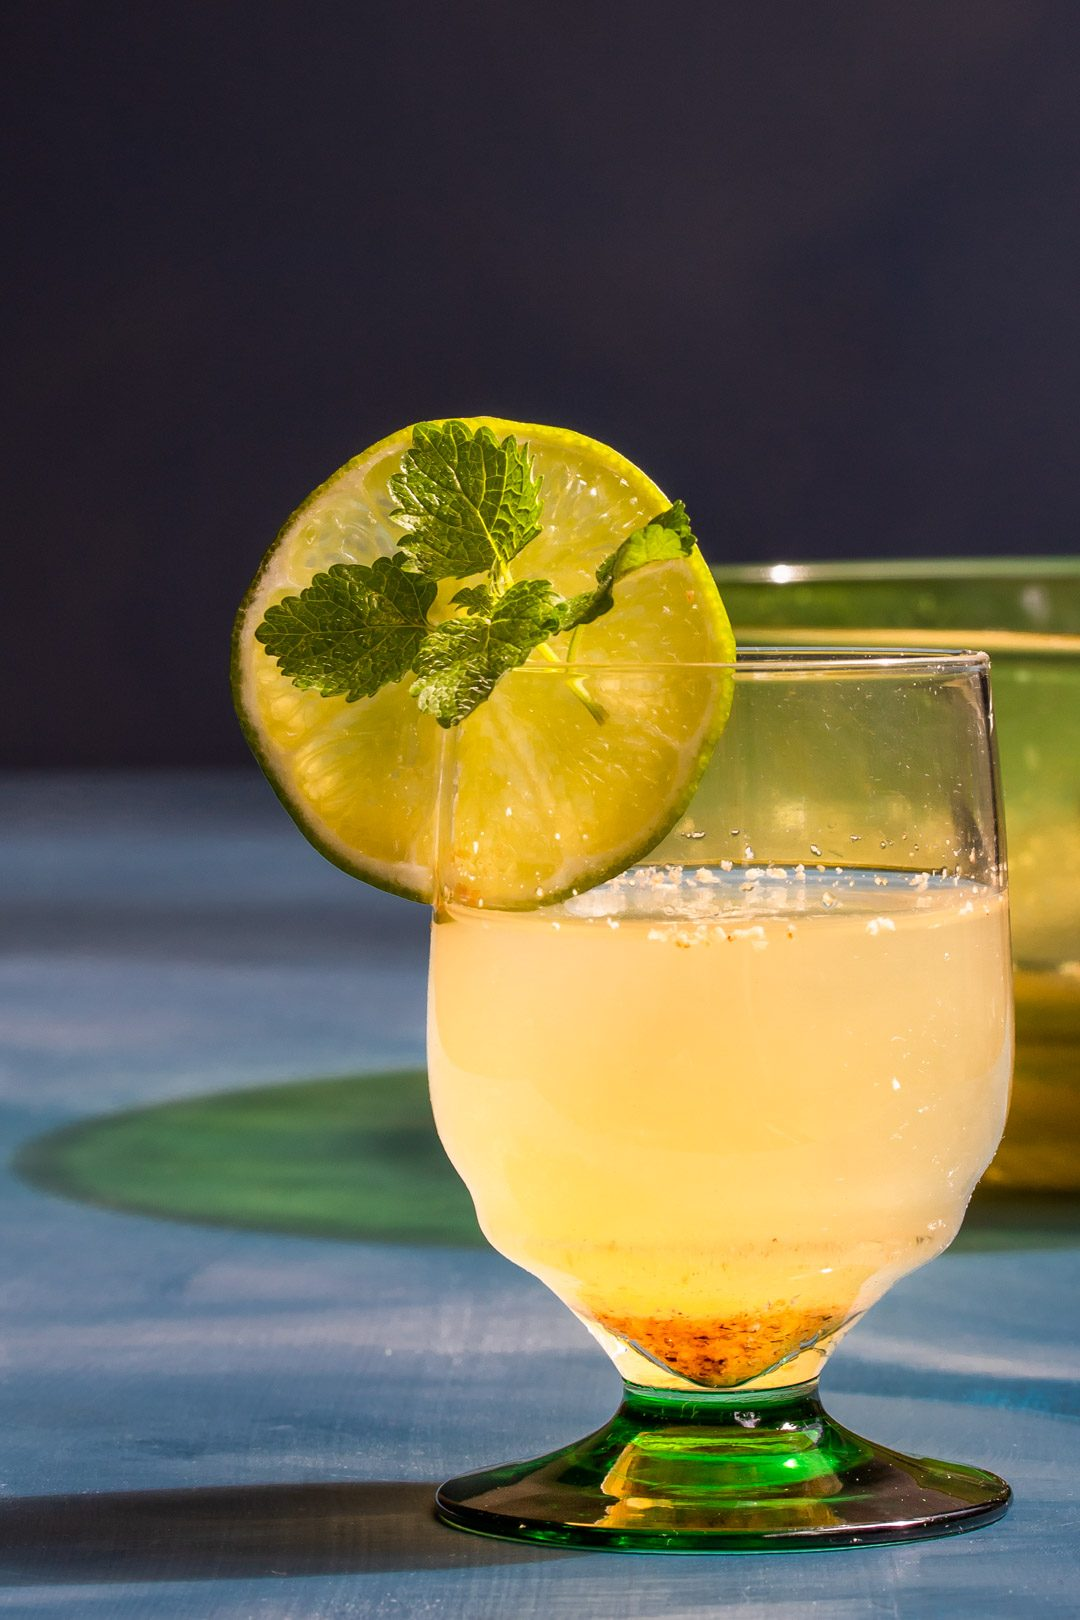 coconut palm arrack punch with green glass bowl in background